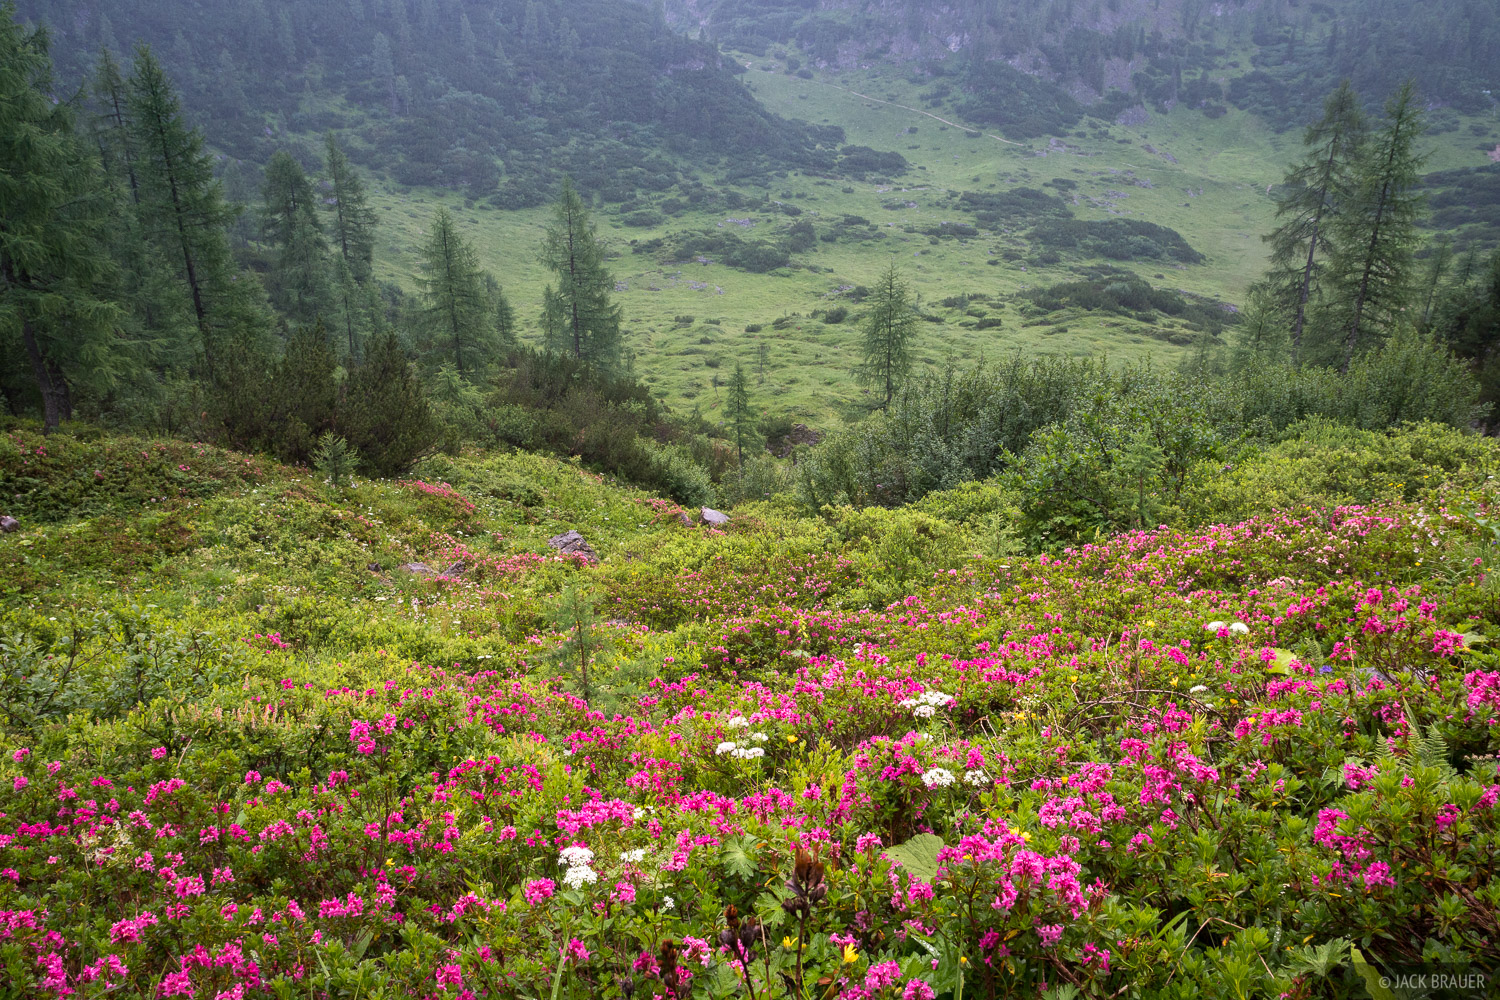 Berchtesgaden, Europe, Germany, wildflowers, alpenrose, photo